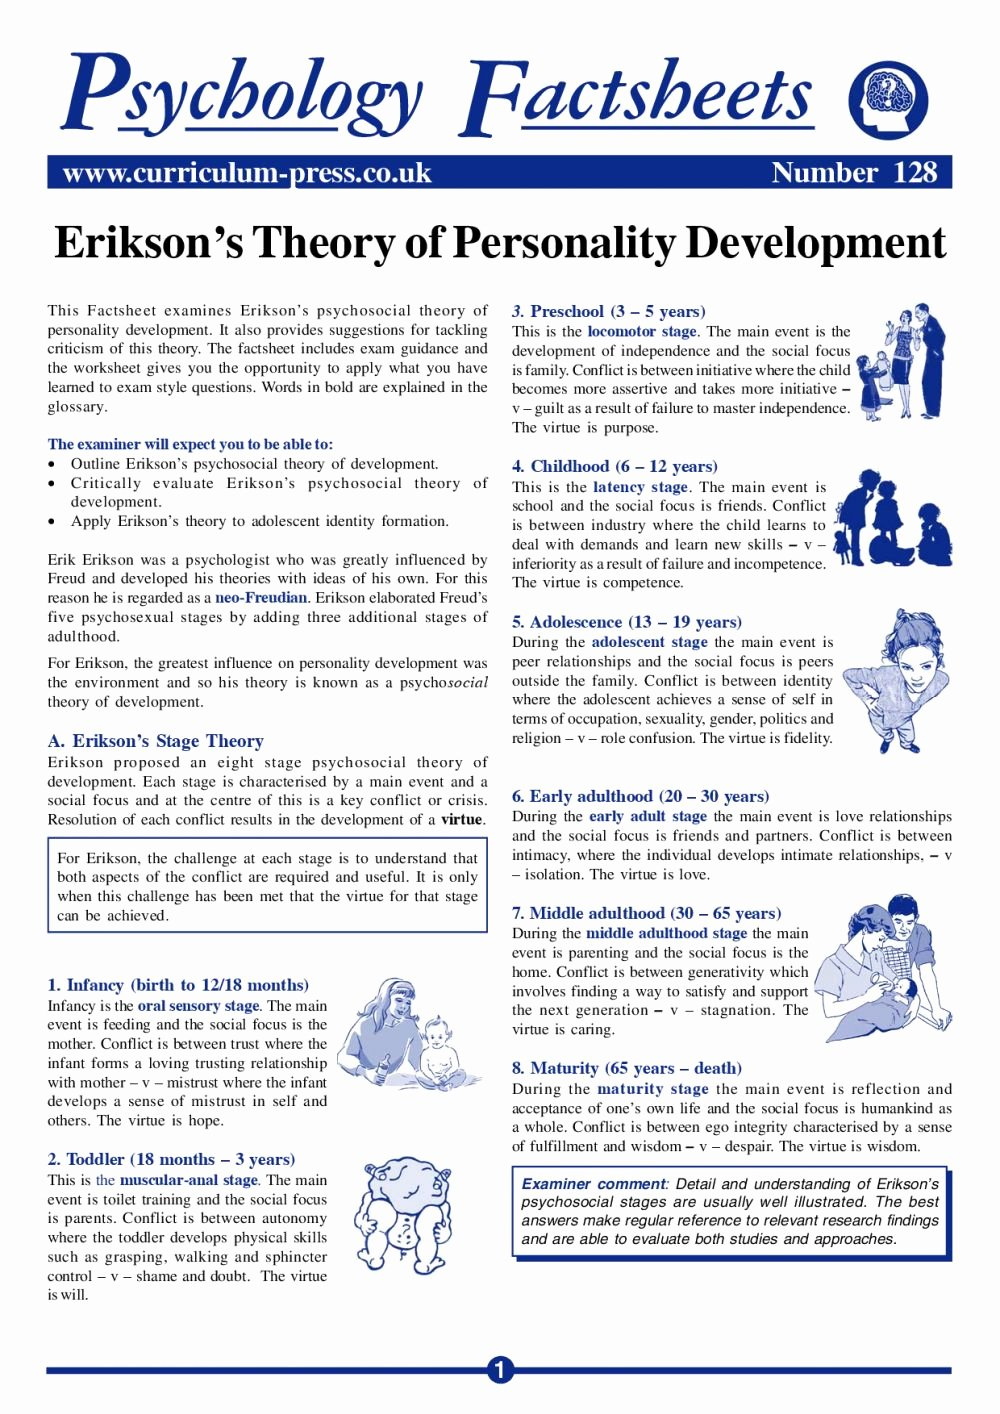 Erikson Stages Of Development Chart Pdf New Curriculum Press Erikson's theory Of Personality Development